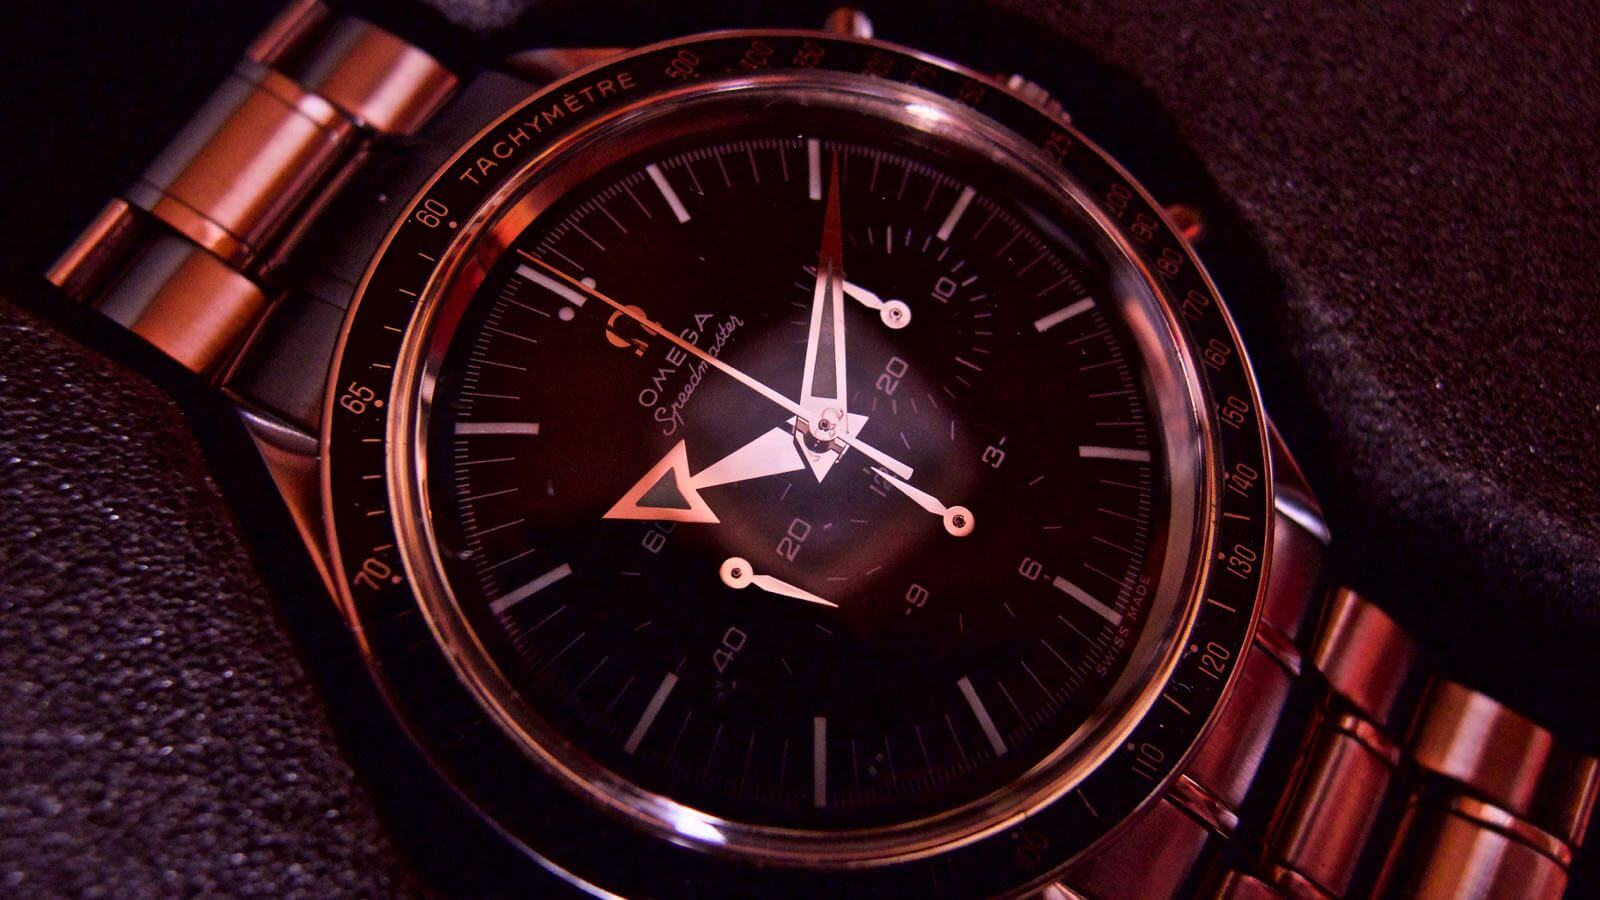 0029 The first watch I went to the moon  Omega Speedmaster story 07